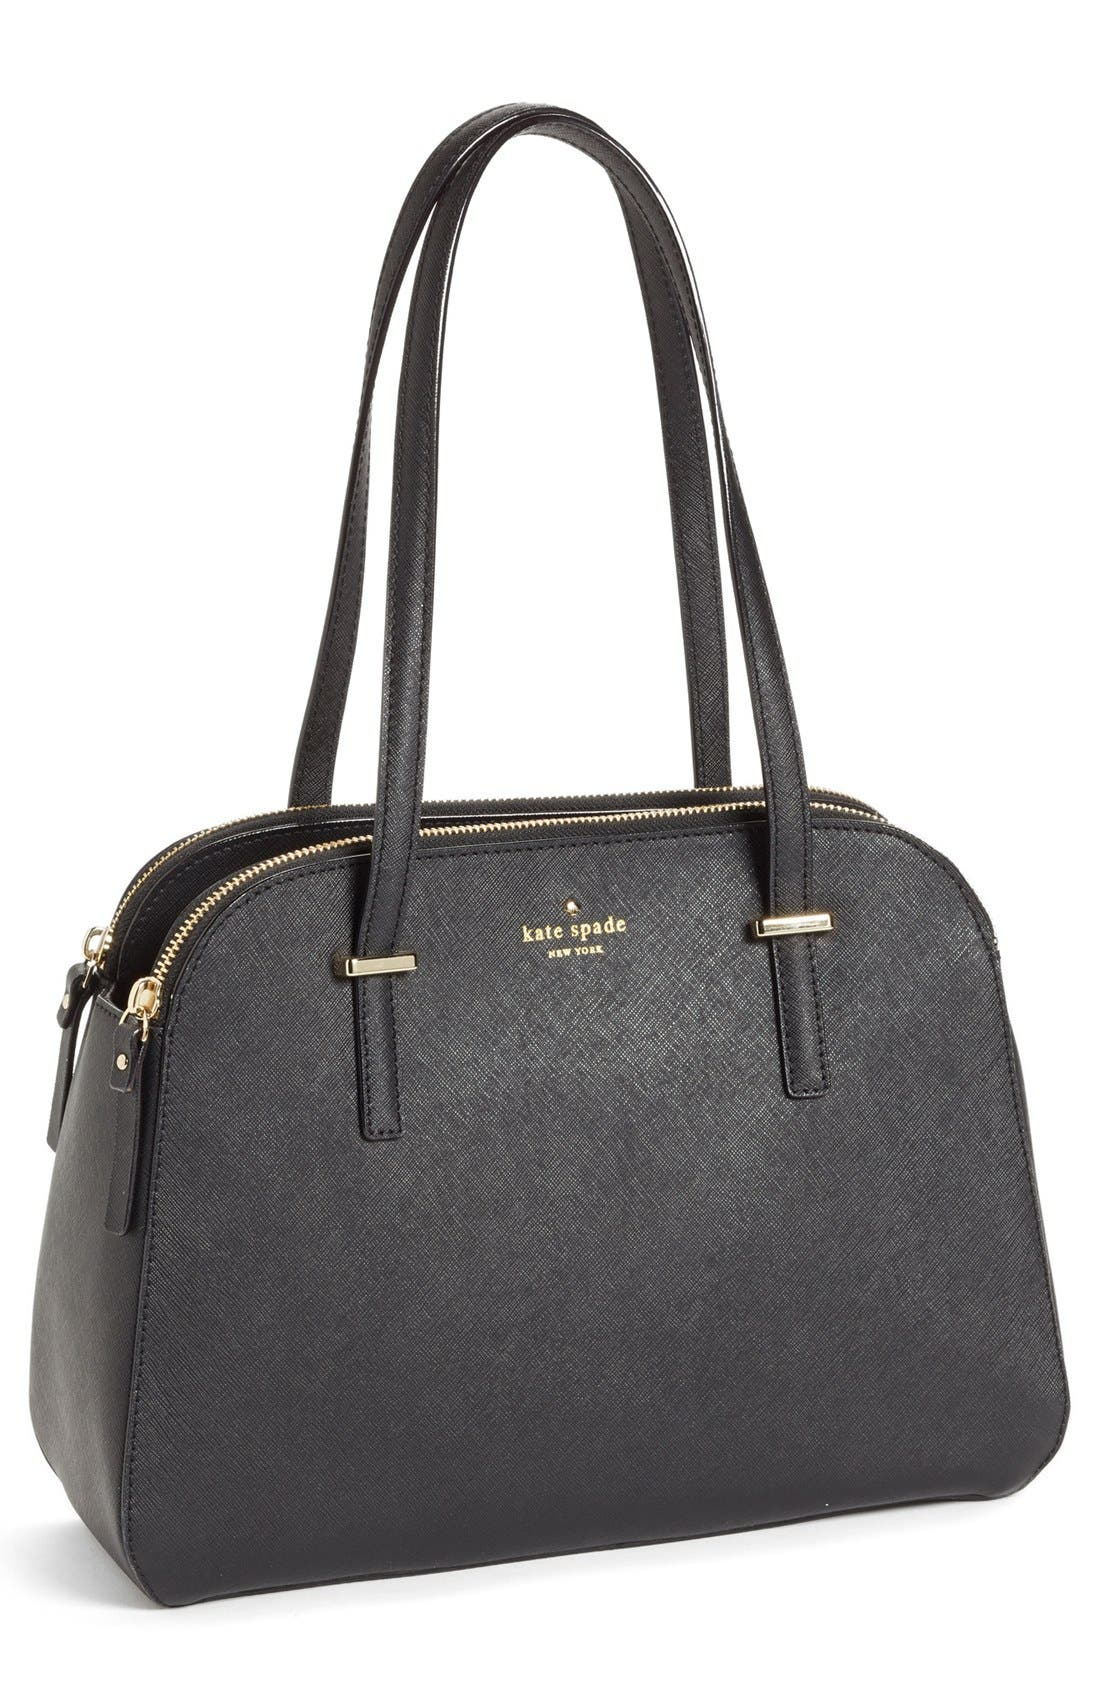 Alternate Image 1 Selected - kate spade new york 'small elissa' tote